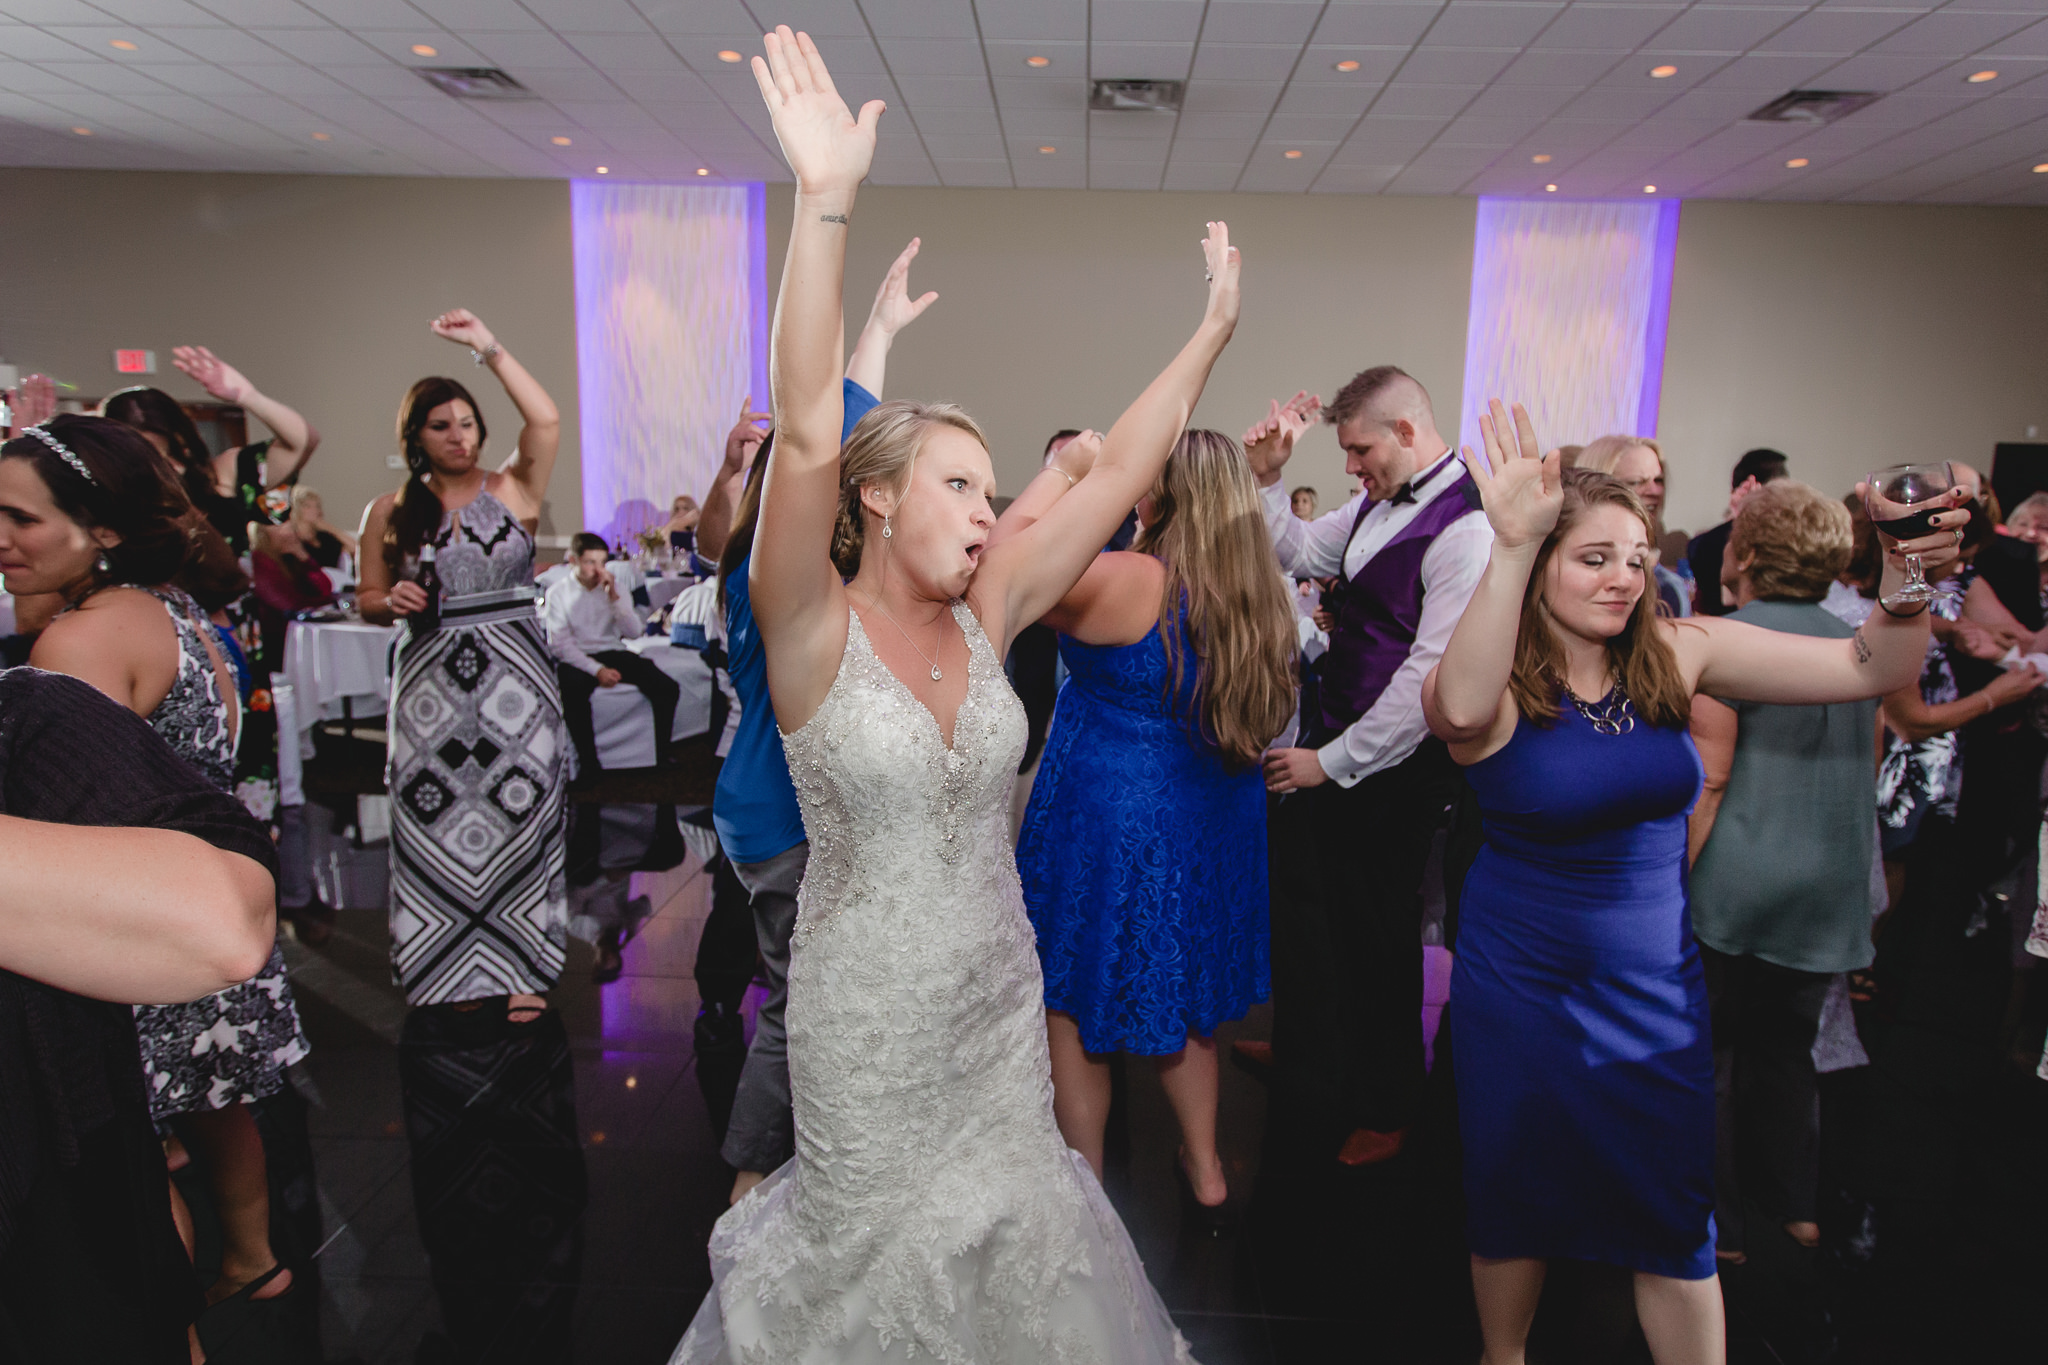 Bride on the dance floor at the Fez wedding reception